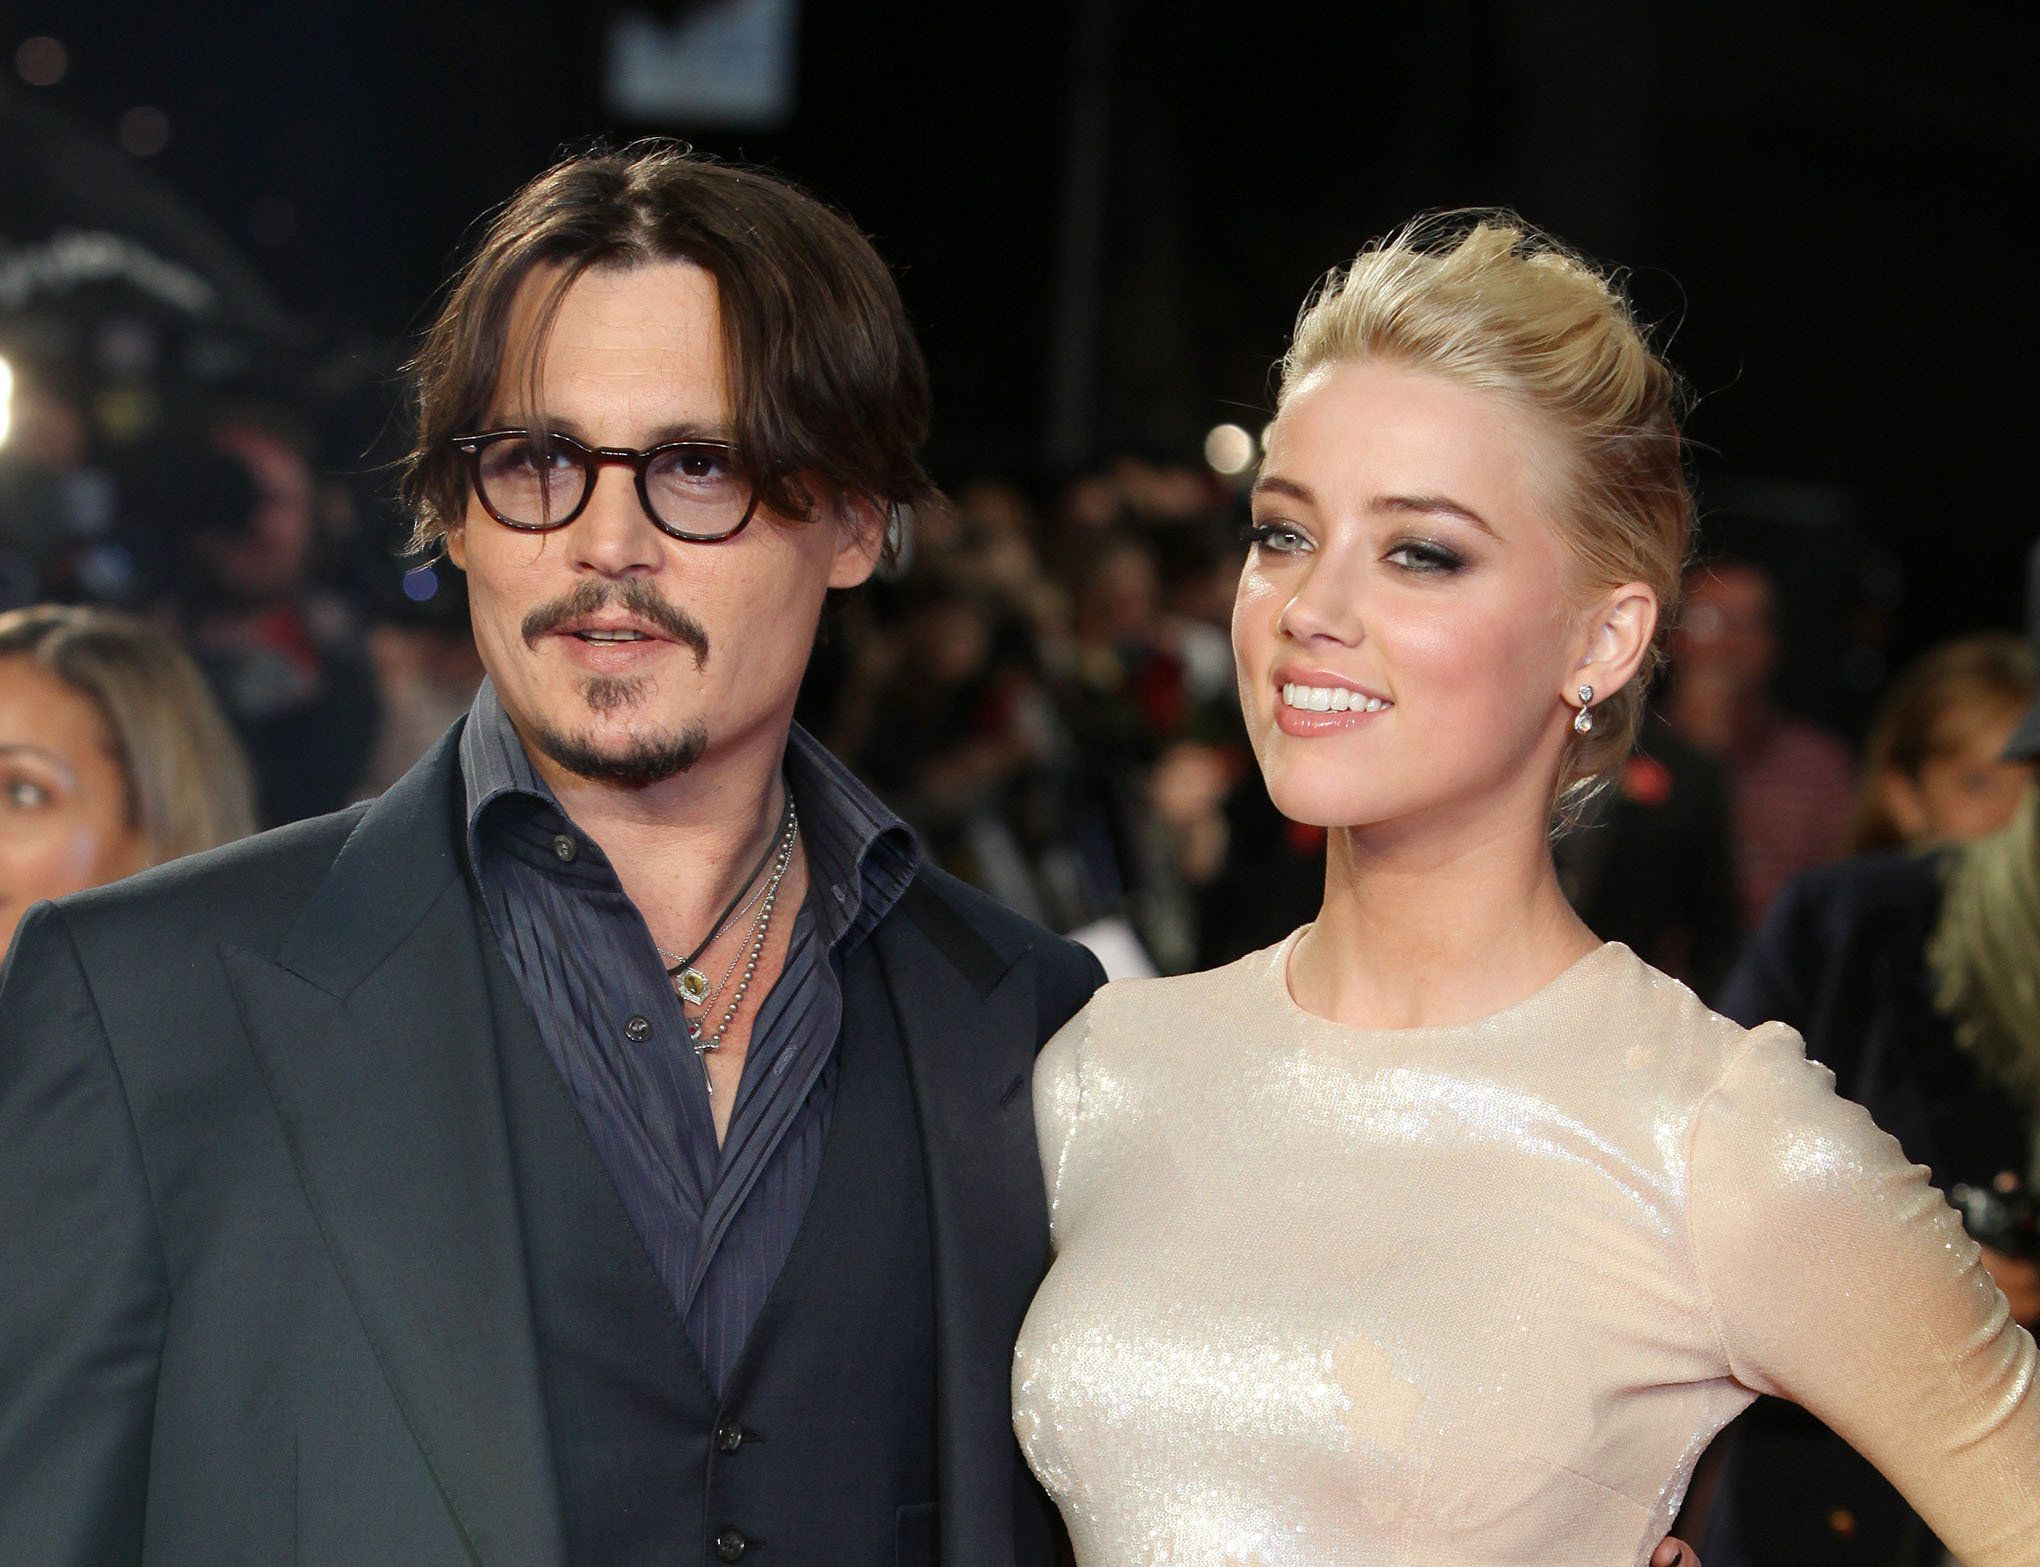 Amber Heard Says She Lost Out On Jobs After Johnny Depp